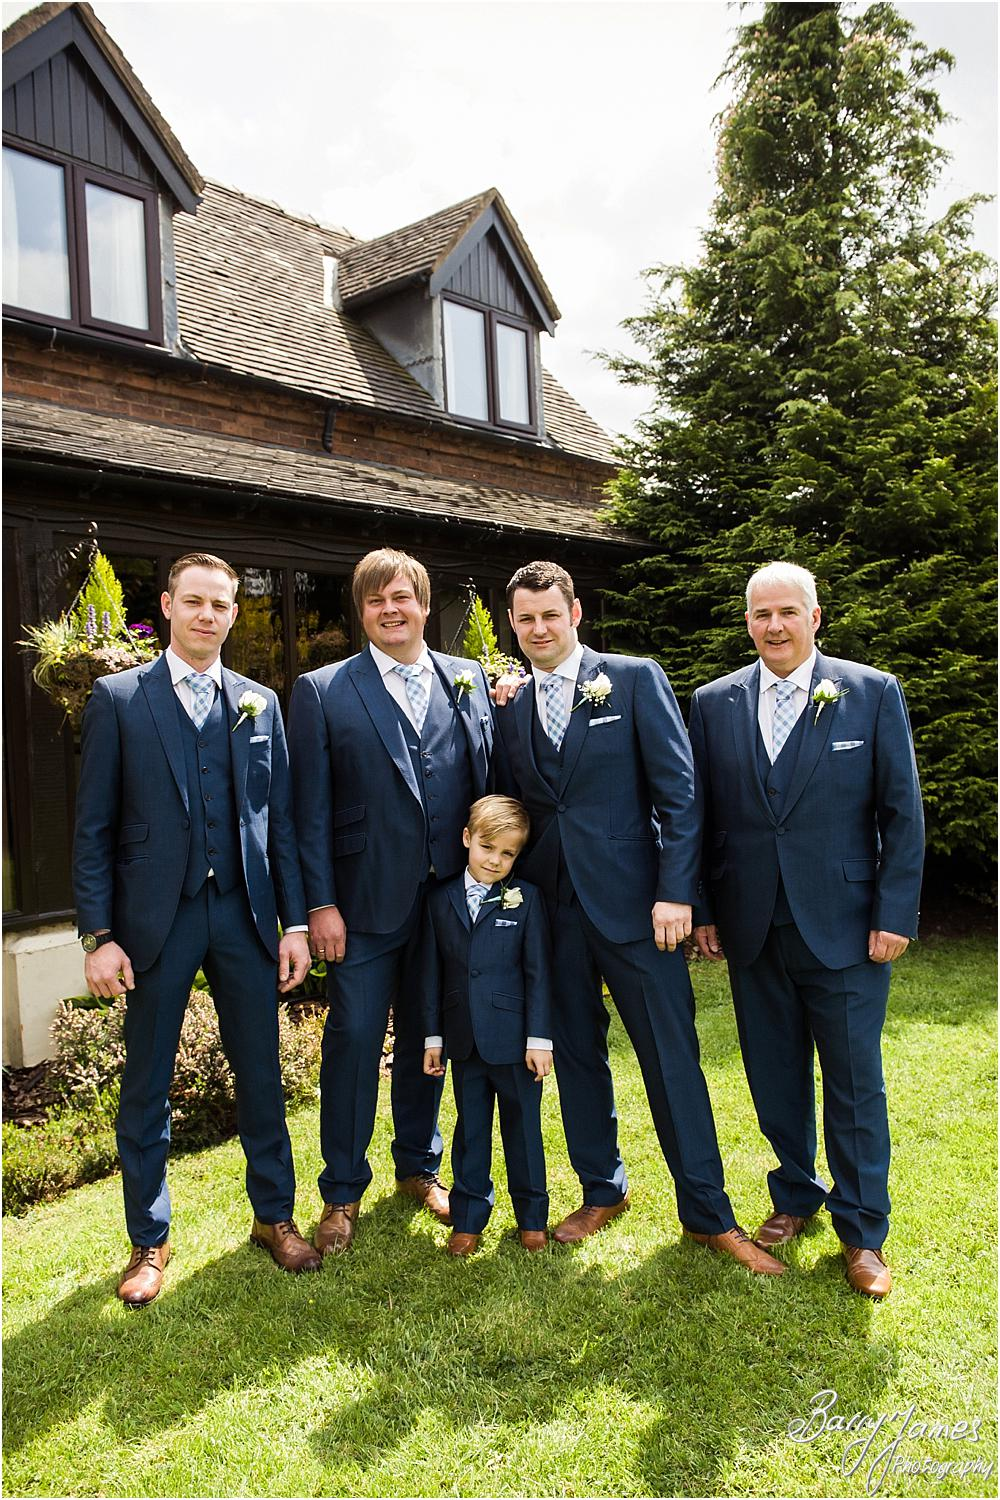 Contemporary photos of our relaxed groomsmen looking fabulous in their suits from A-Z Wedding Services Stourport at Oak Farm Hotel in Cannock by Cannock Wedding Photographers Barry James